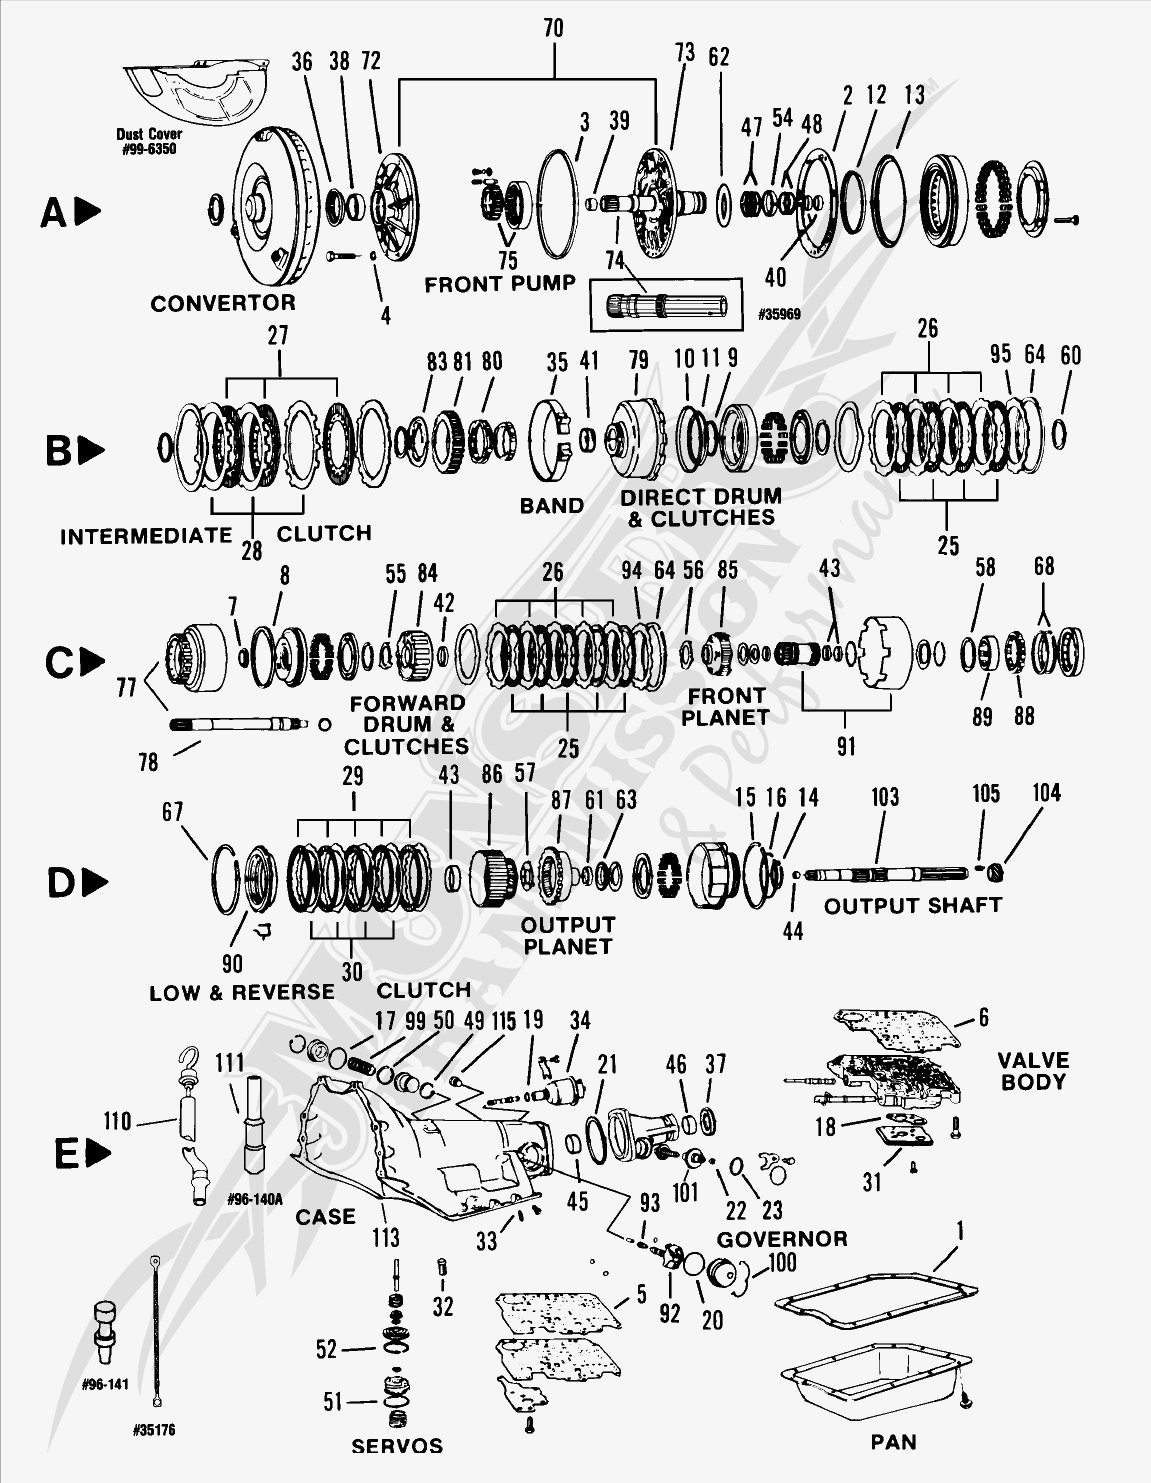 simple motorcycle wiring diagram radio for 2006 chevy trailblazer transmission data turbo 350c th350c automatic parts and short block